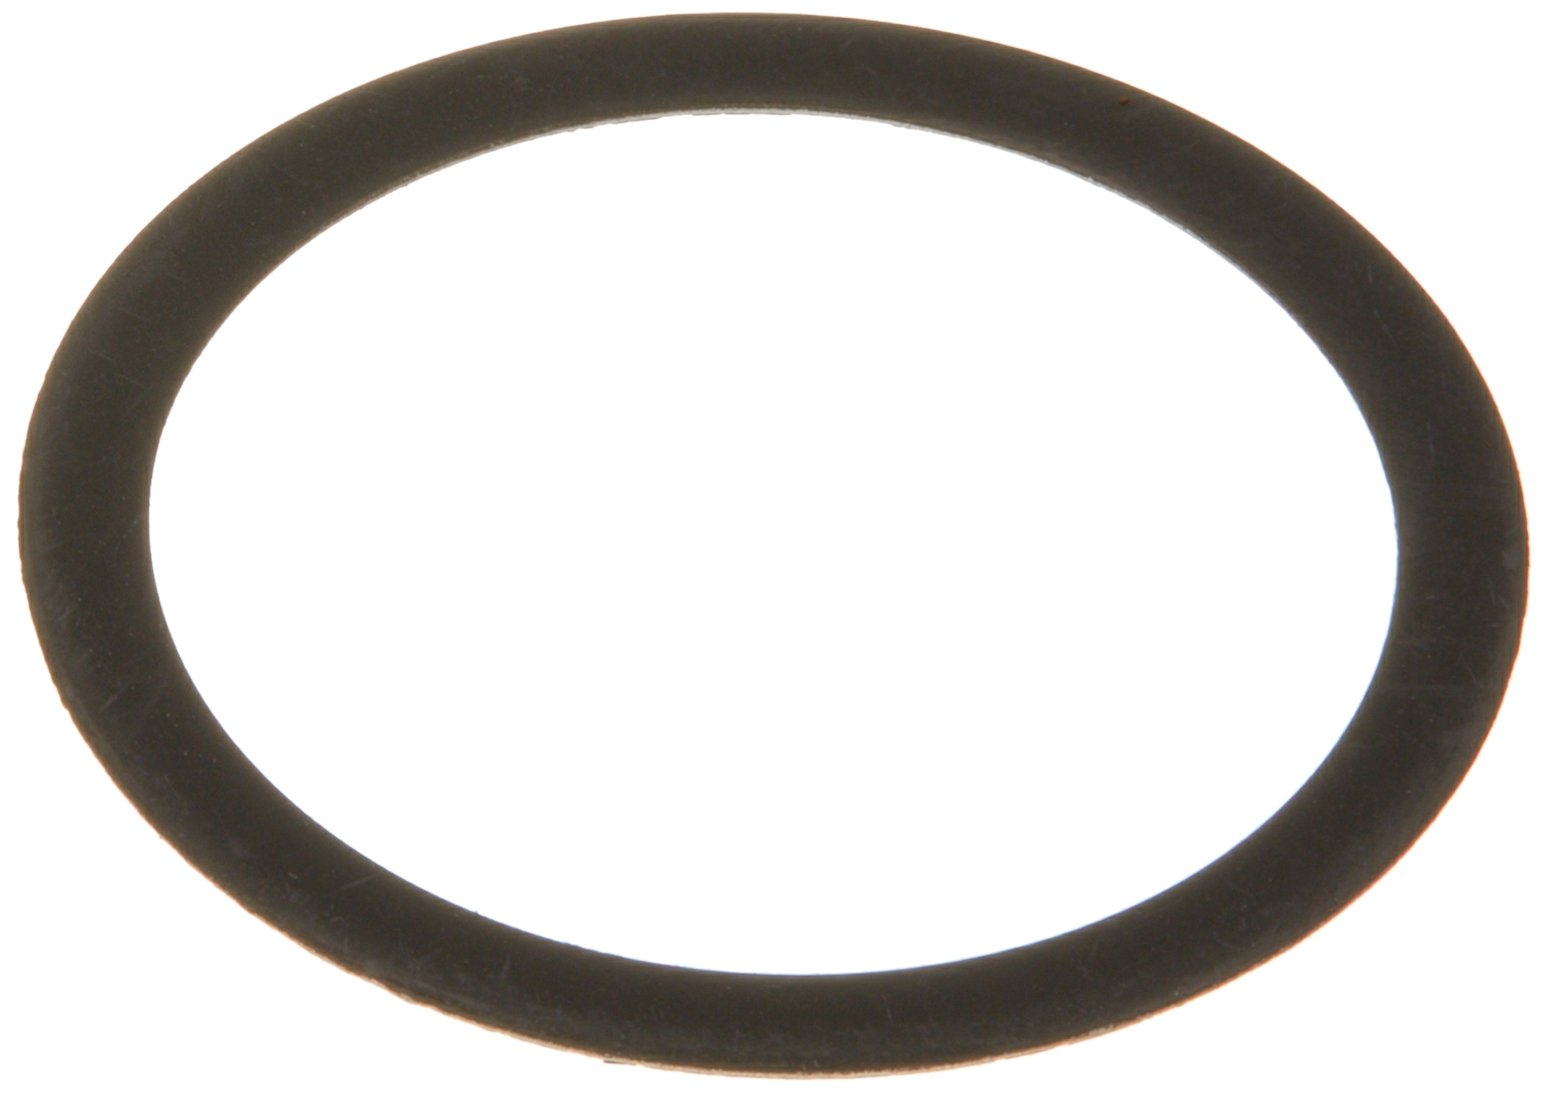 Cheap Fitting Fuel Filter Find Deals On Line At Allstar Get Quotations Holley 108 8 Bowl Inlet Gasket